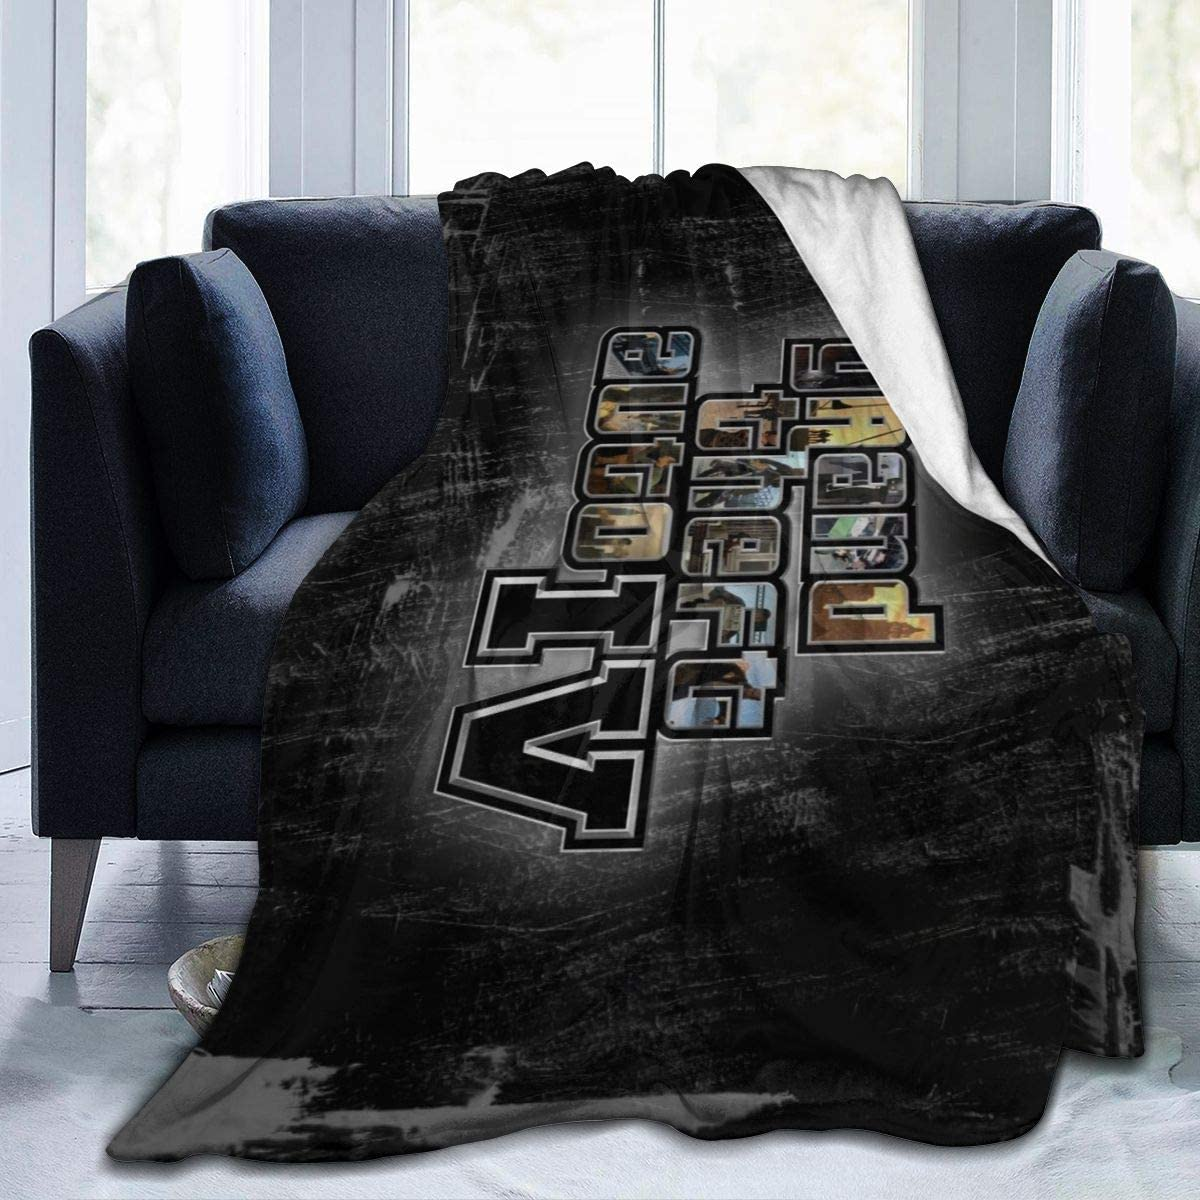 "Gr_and The_ft Au-to IV Ultra-Soft Micro Fleece Blanket Anti-pilling Flannel Sleep Comfort Super Soft Sofa Blanket To Let Your Cold Winter Feel The Warmth Of The Stove (5040)(6050)(8060) 50""x40"""